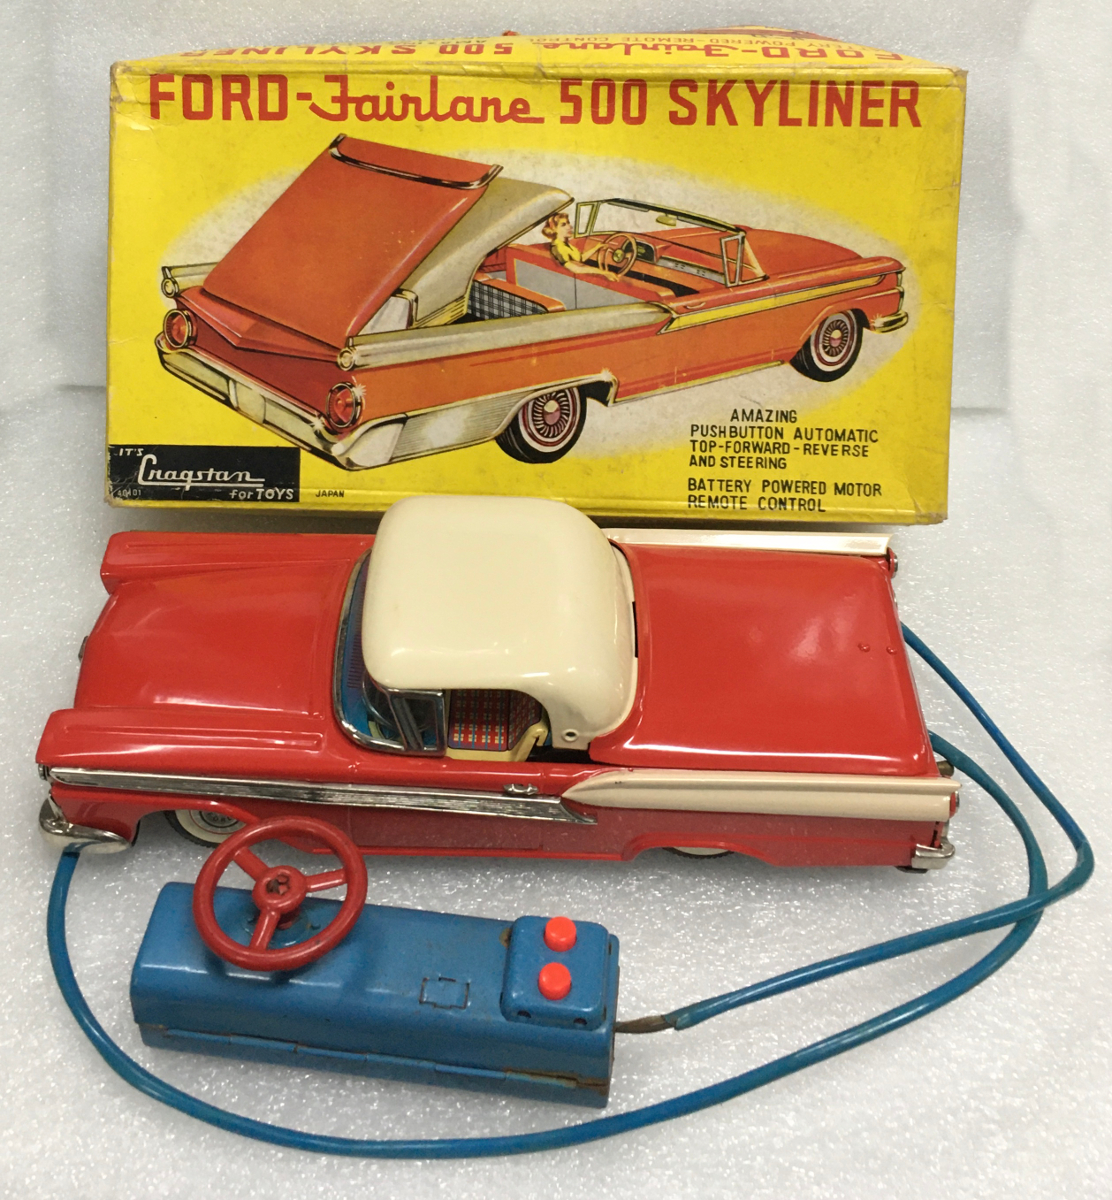 1950's cragstan ford fairlane 500 skyliner battery operated car 1